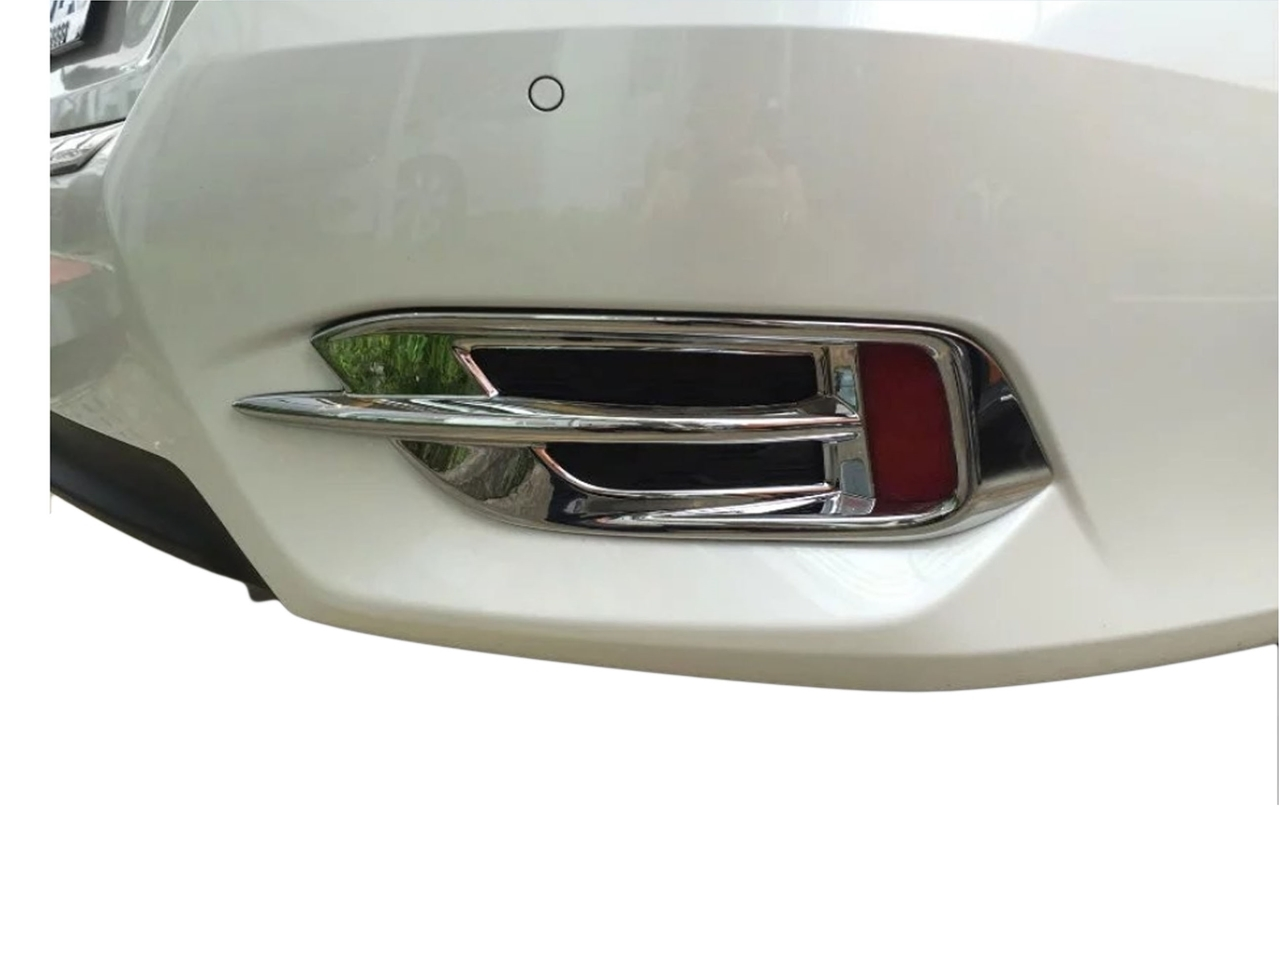 Civic Rear Fog Lamp Cover Chrome